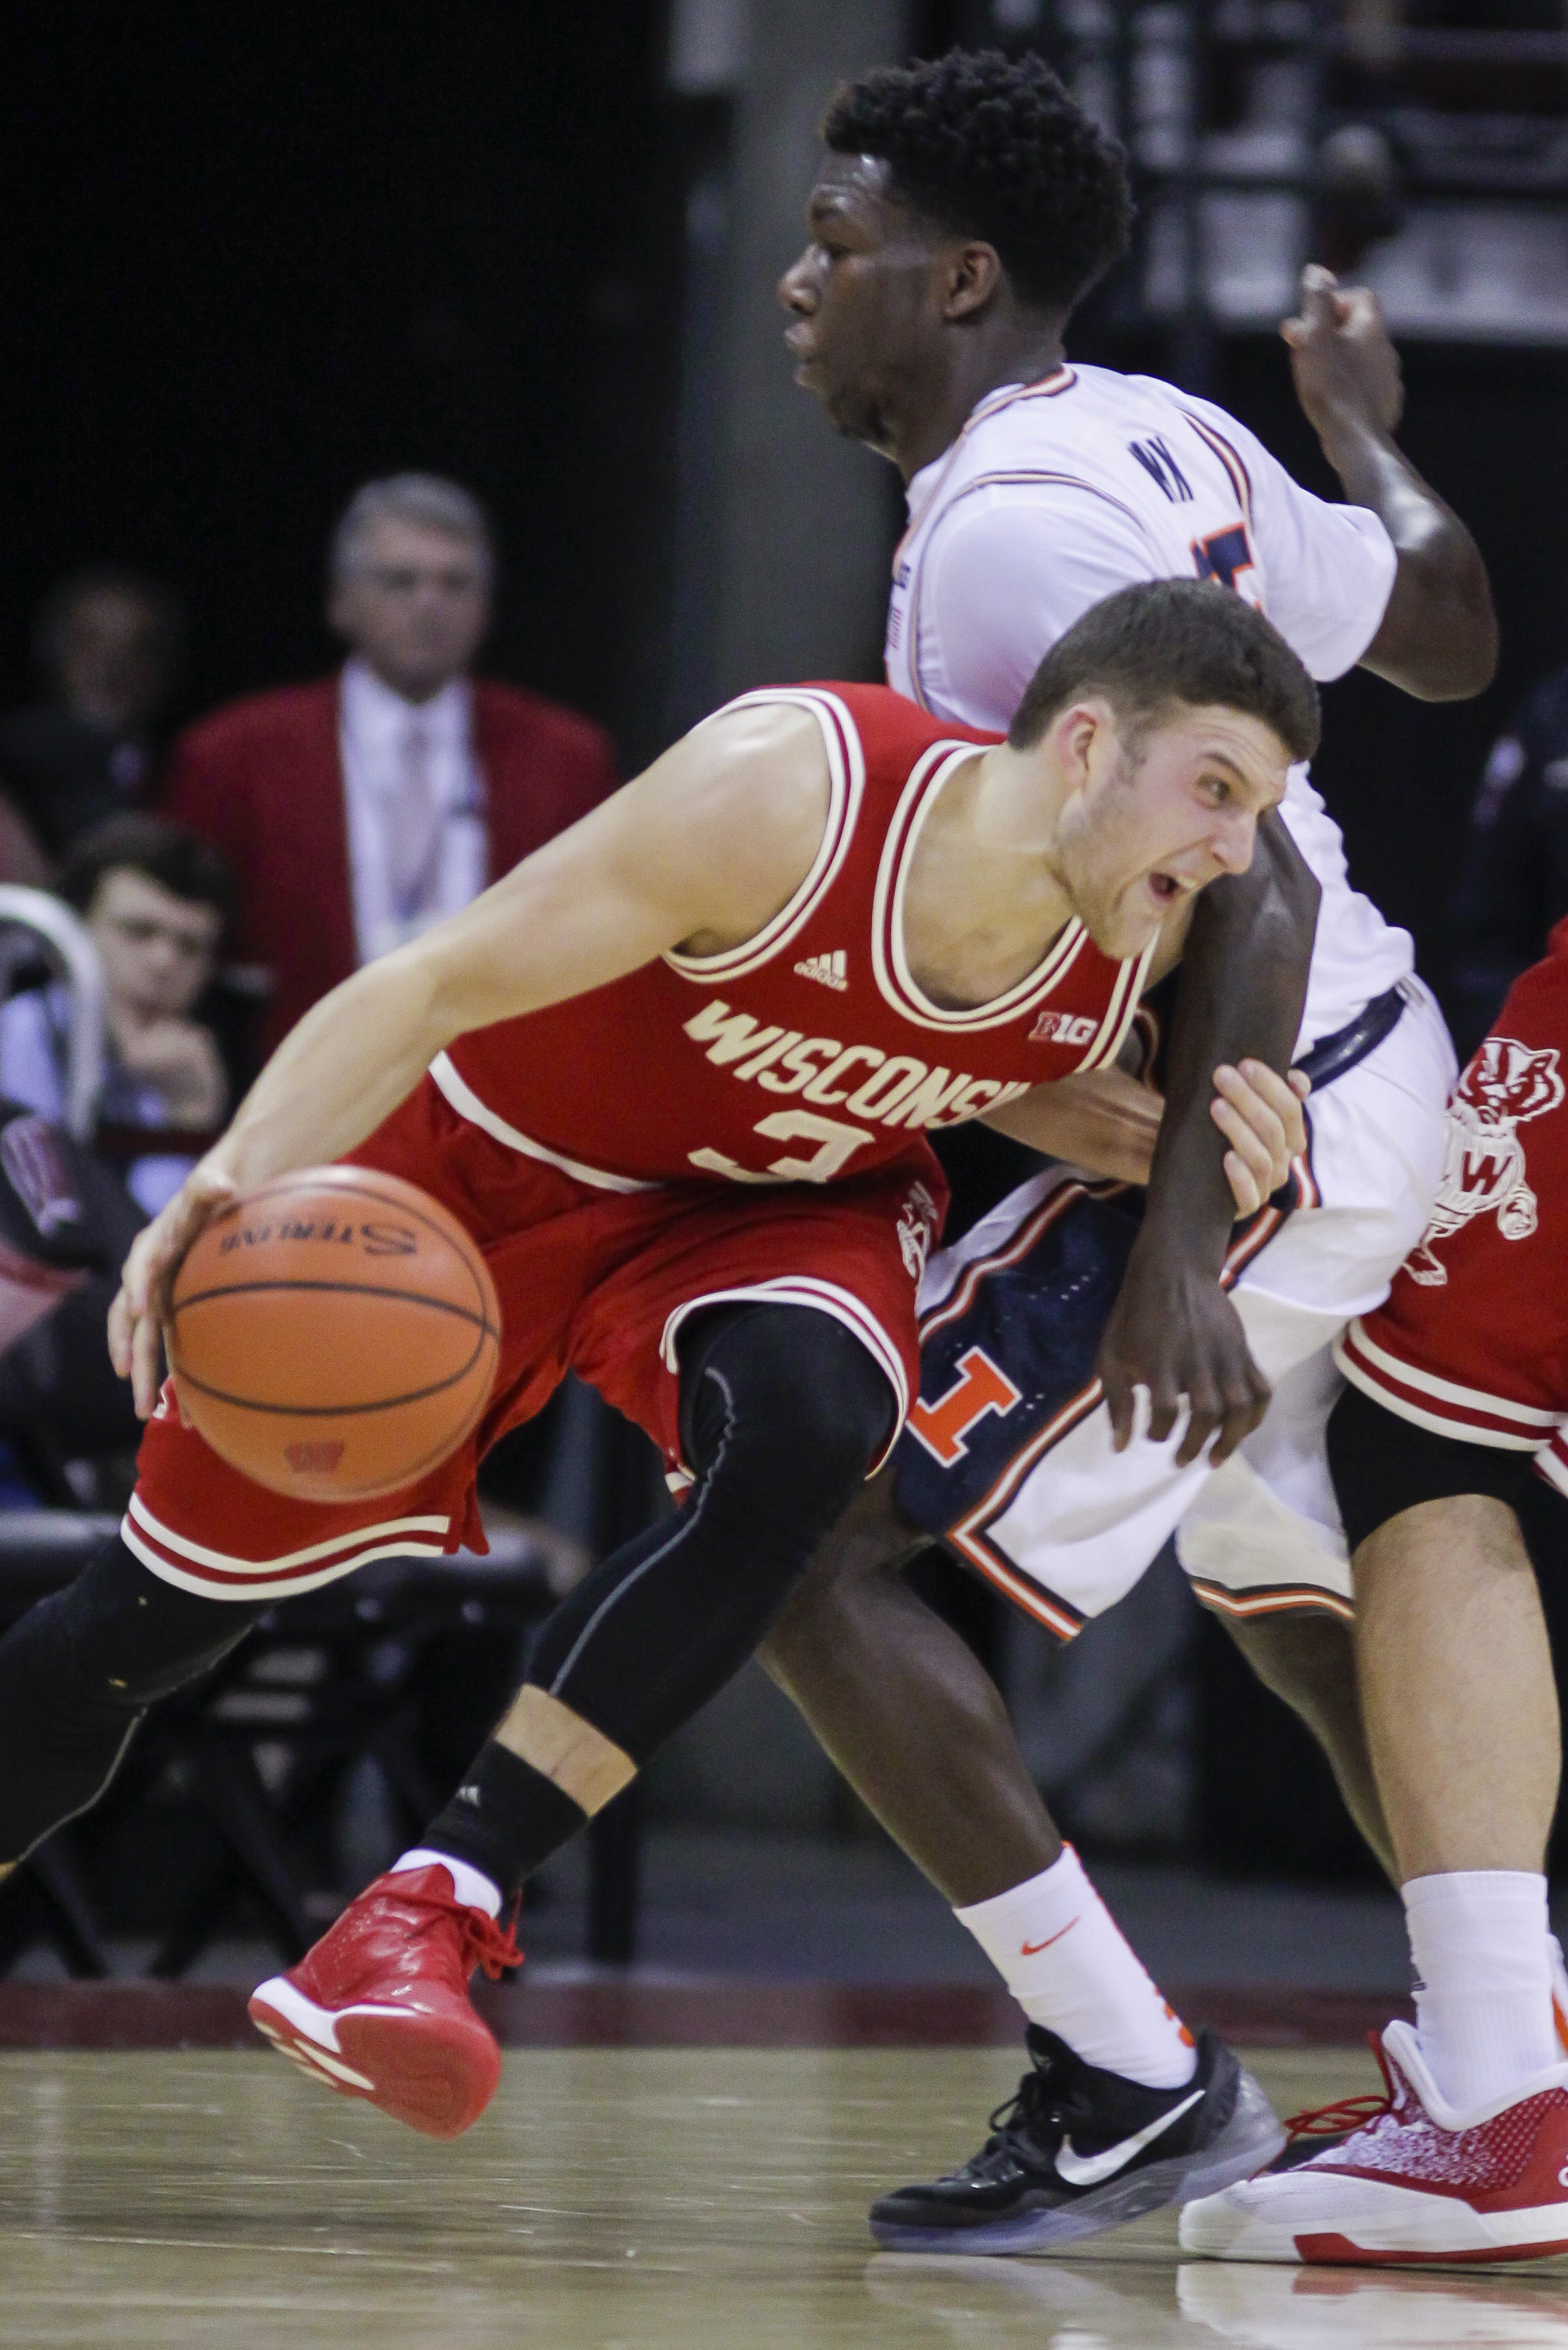 Wisconsin's Zak Showalter (3) drives on Illinois' Kendrick Nunn (25) during the first half of an NCAA college basketball game Sunday, Feb. 21, 2016, in Madison, Wis. (AP Photo/Andy Manis)